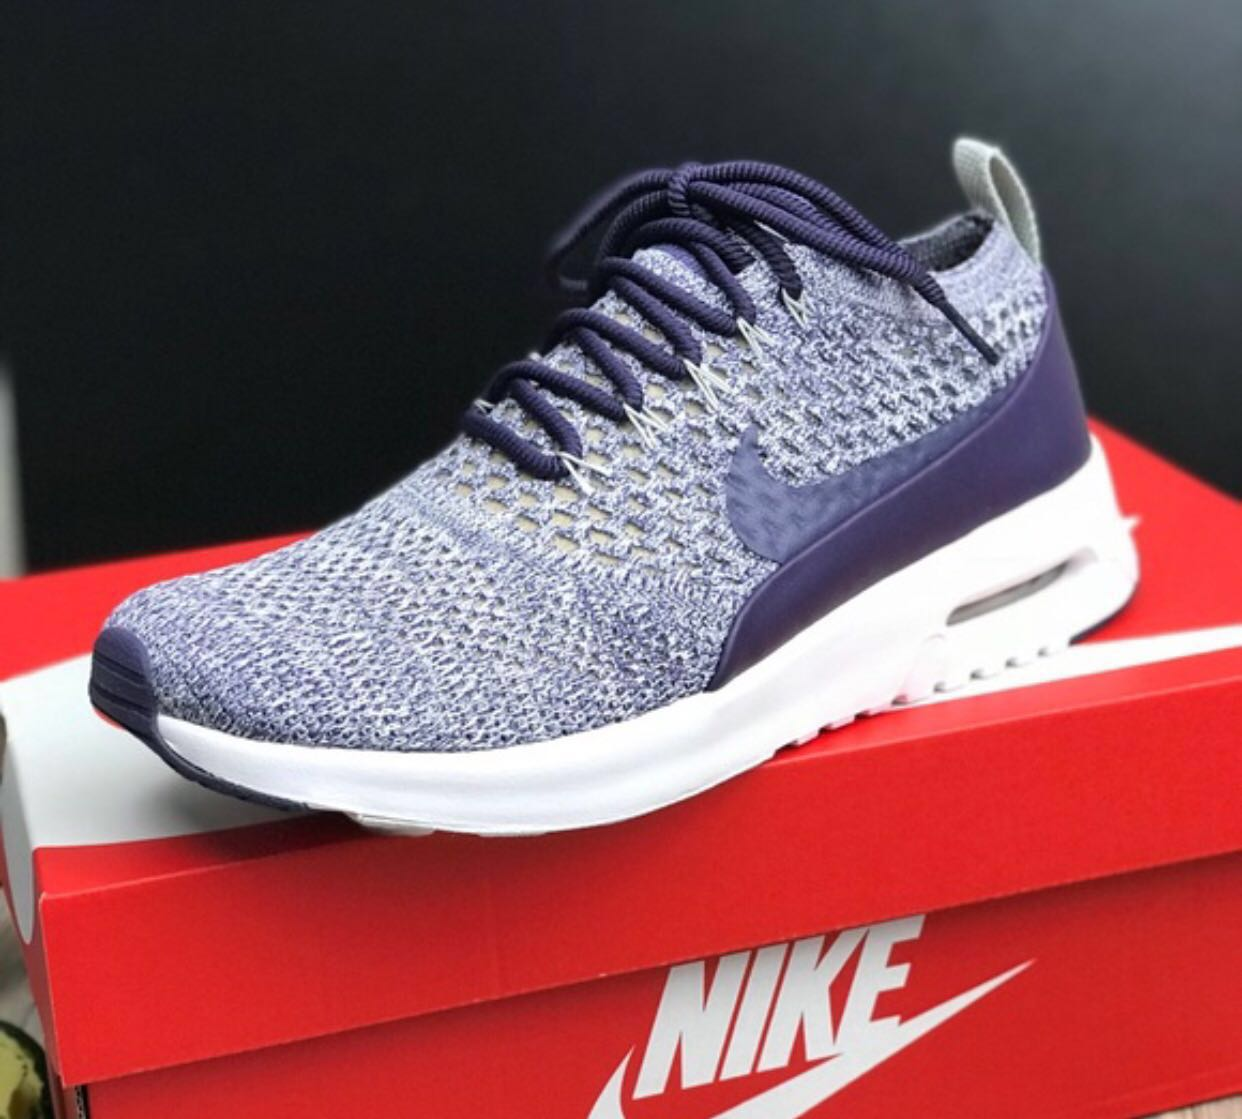 ea1dc1d48a AUTHENTIC] Nike Air Max Thea Ultra Fk, Women's Fashion, Shoes on ...